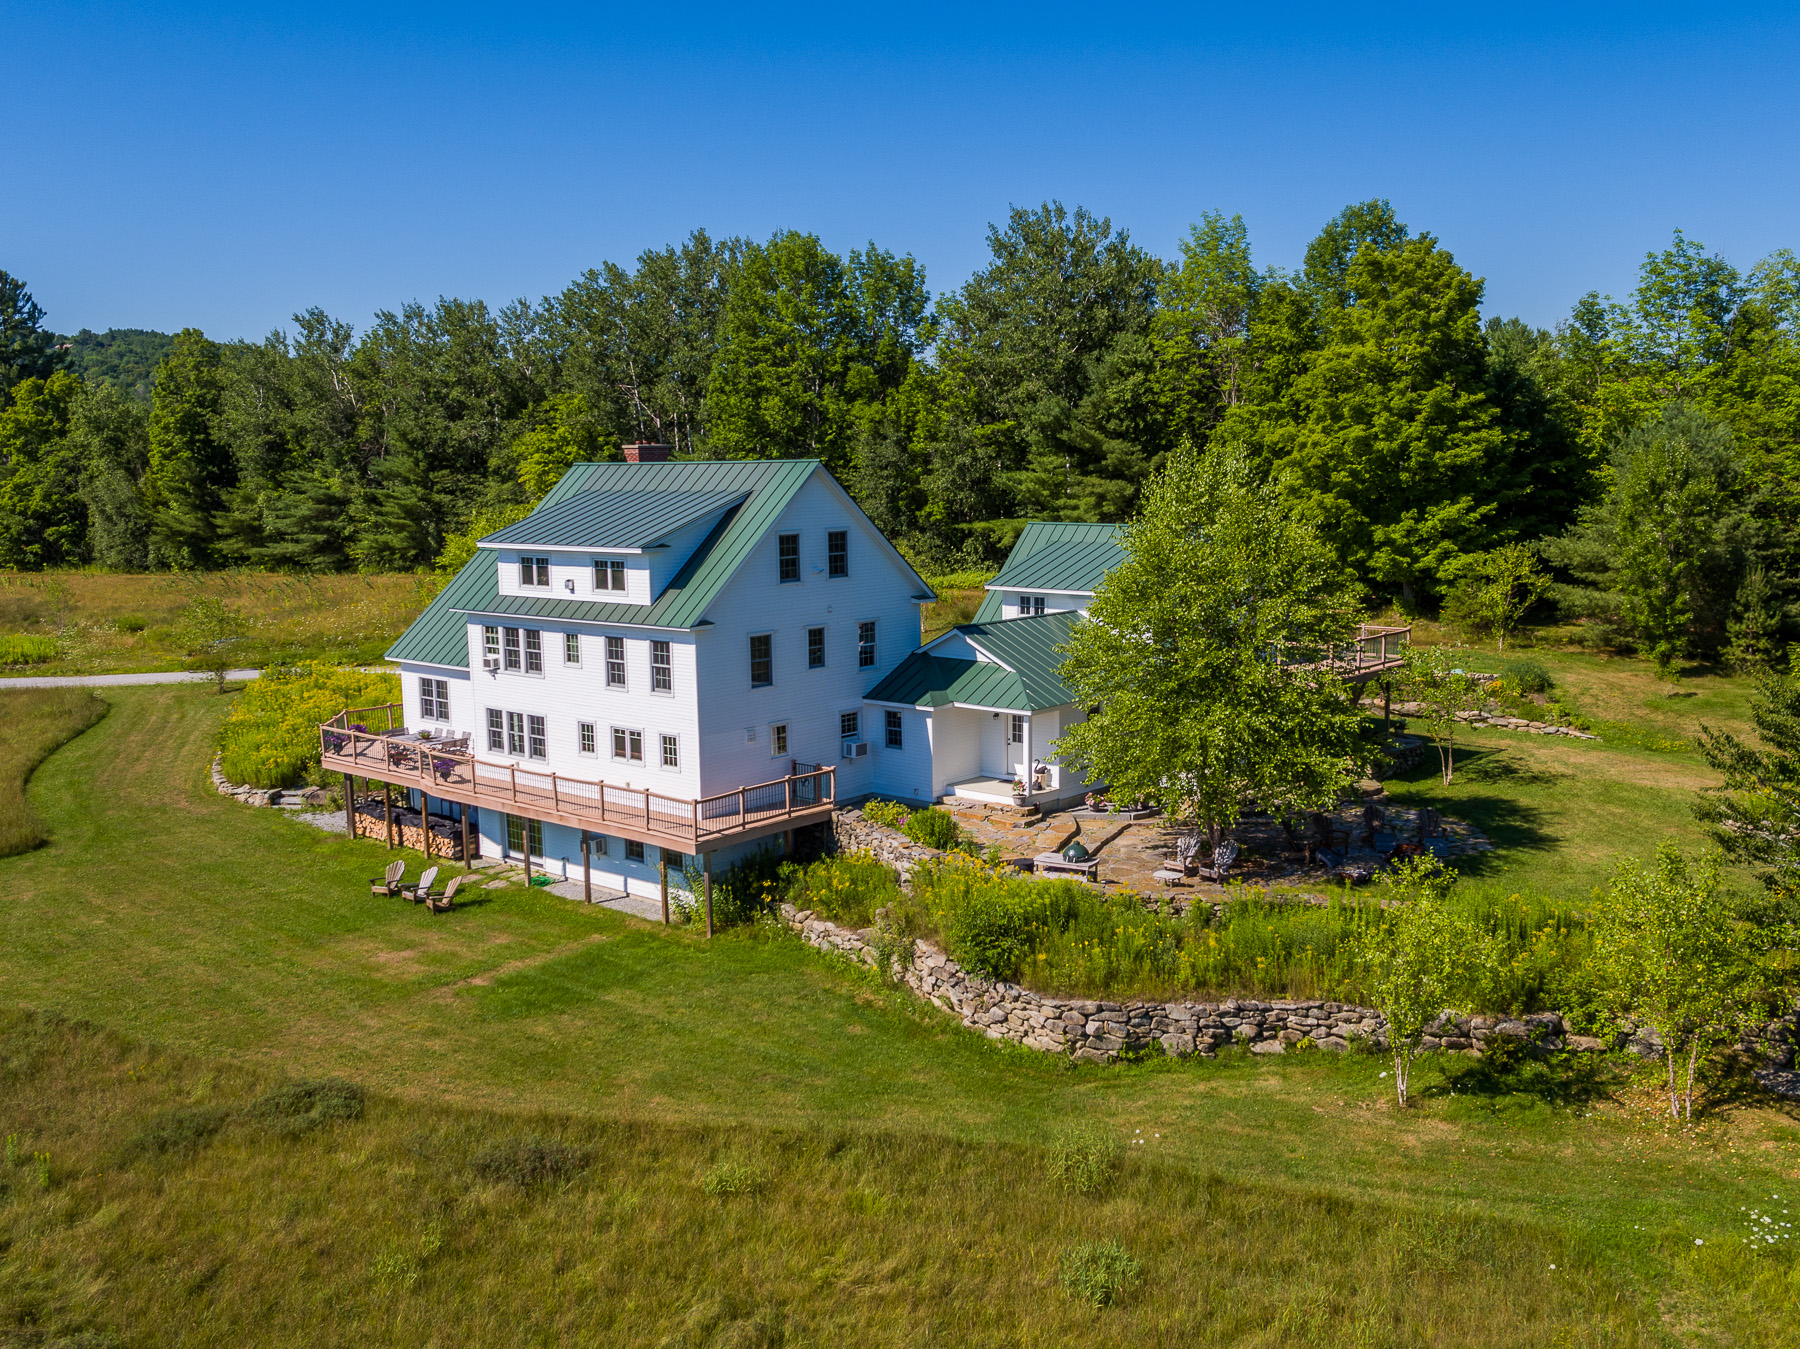 Single Family Home for Sale at 593 Lear Hill Road Rd, Unity Unity, New Hampshire, 03773 United States